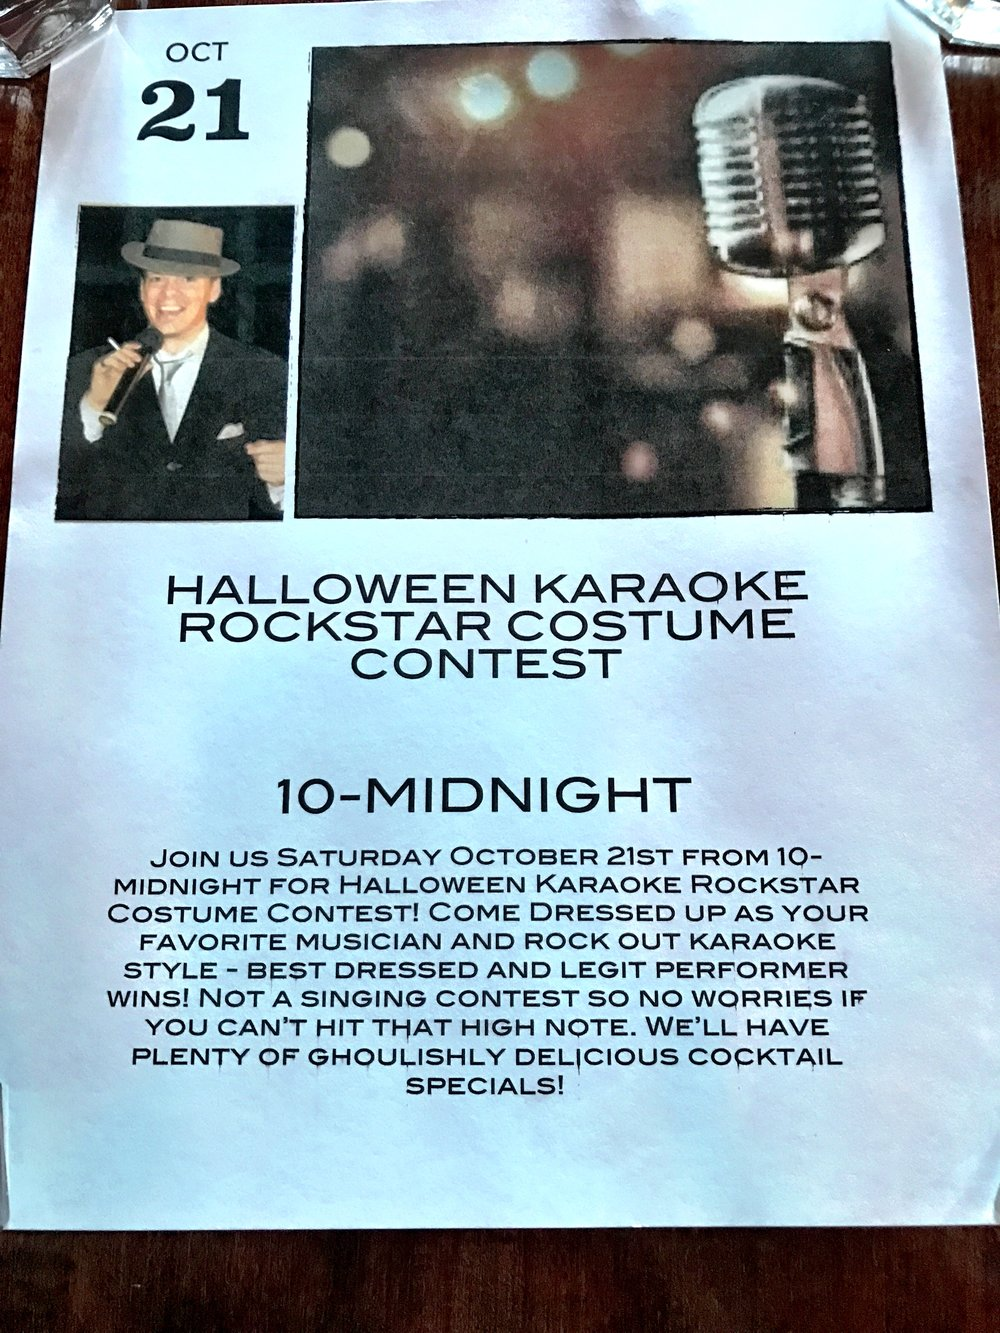 Halloween Rockstar KARAOKE Contest Saturday October 21st 10-midnight   Join us Saturday October 21st from 10-midnight for Halloween Karaoke Rockstar Costume Contest! Come Dressed up as your favorite musician and rock out karaoke style - best dressed and legit performer wins! Not a singing contest so no worries if you can't hit that high note. We'll have plenty of ghoulishly delicious cocktail specials!